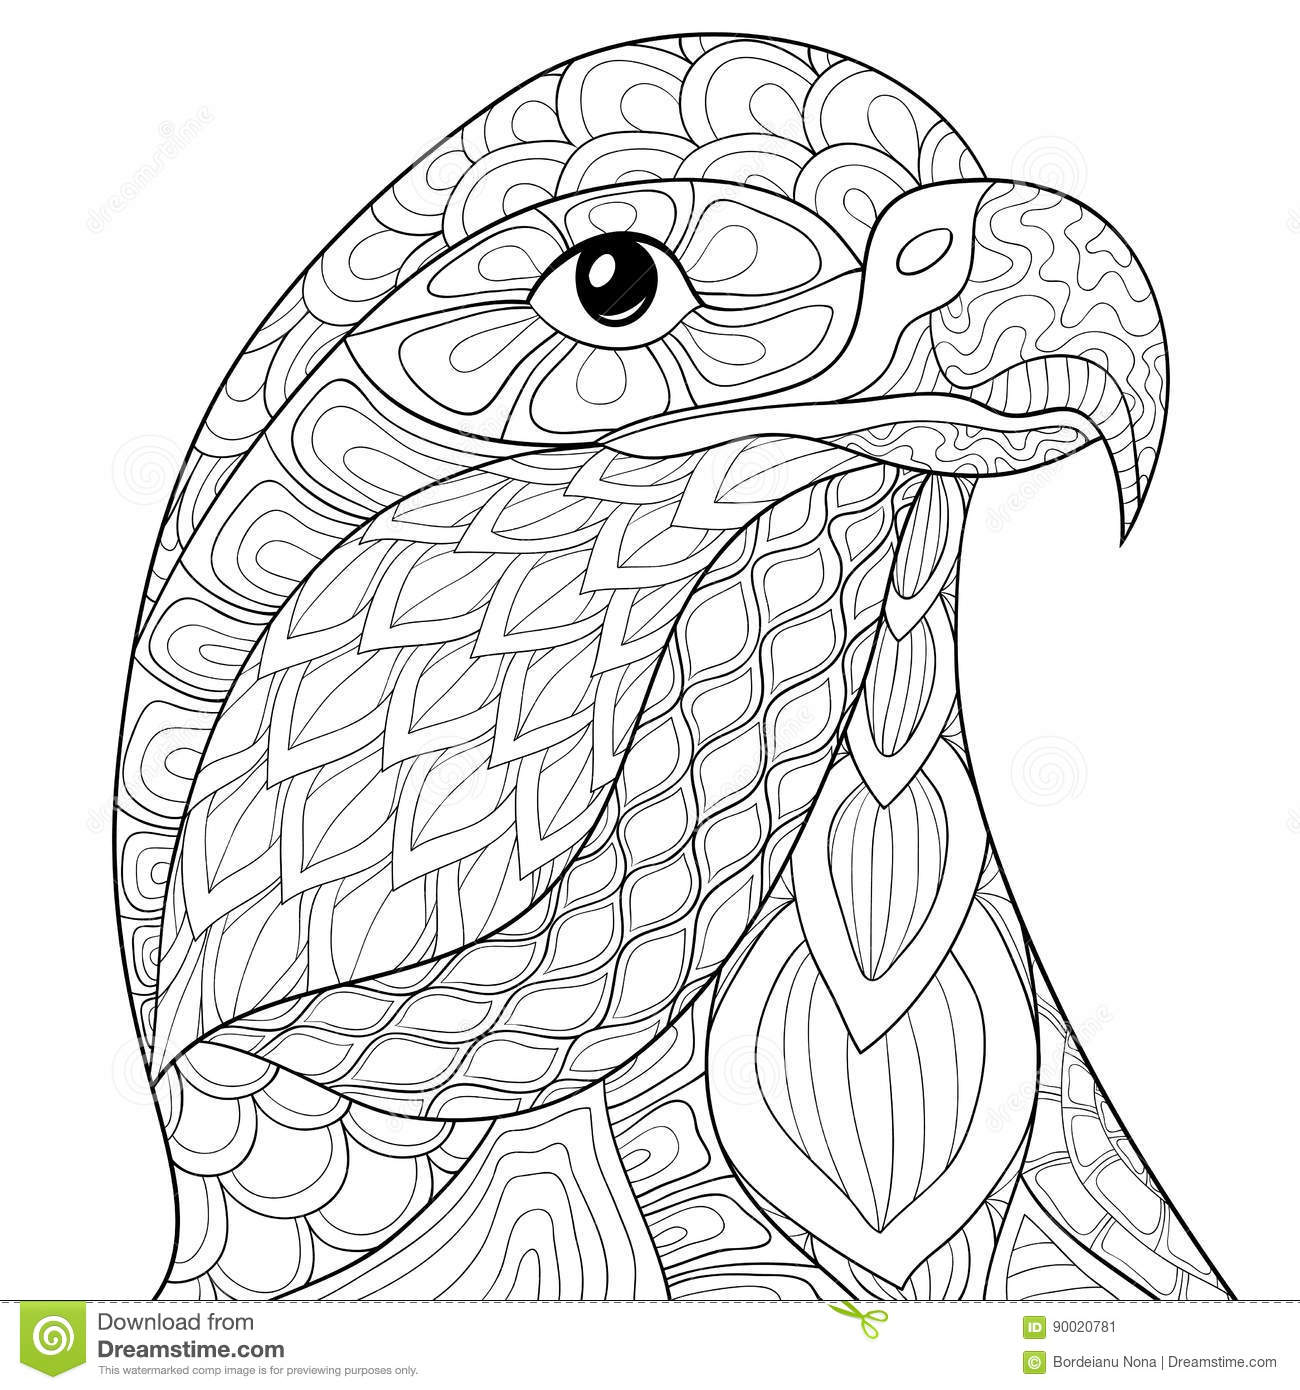 Adult coloring page eagle stock vector. Illustration of flower ...